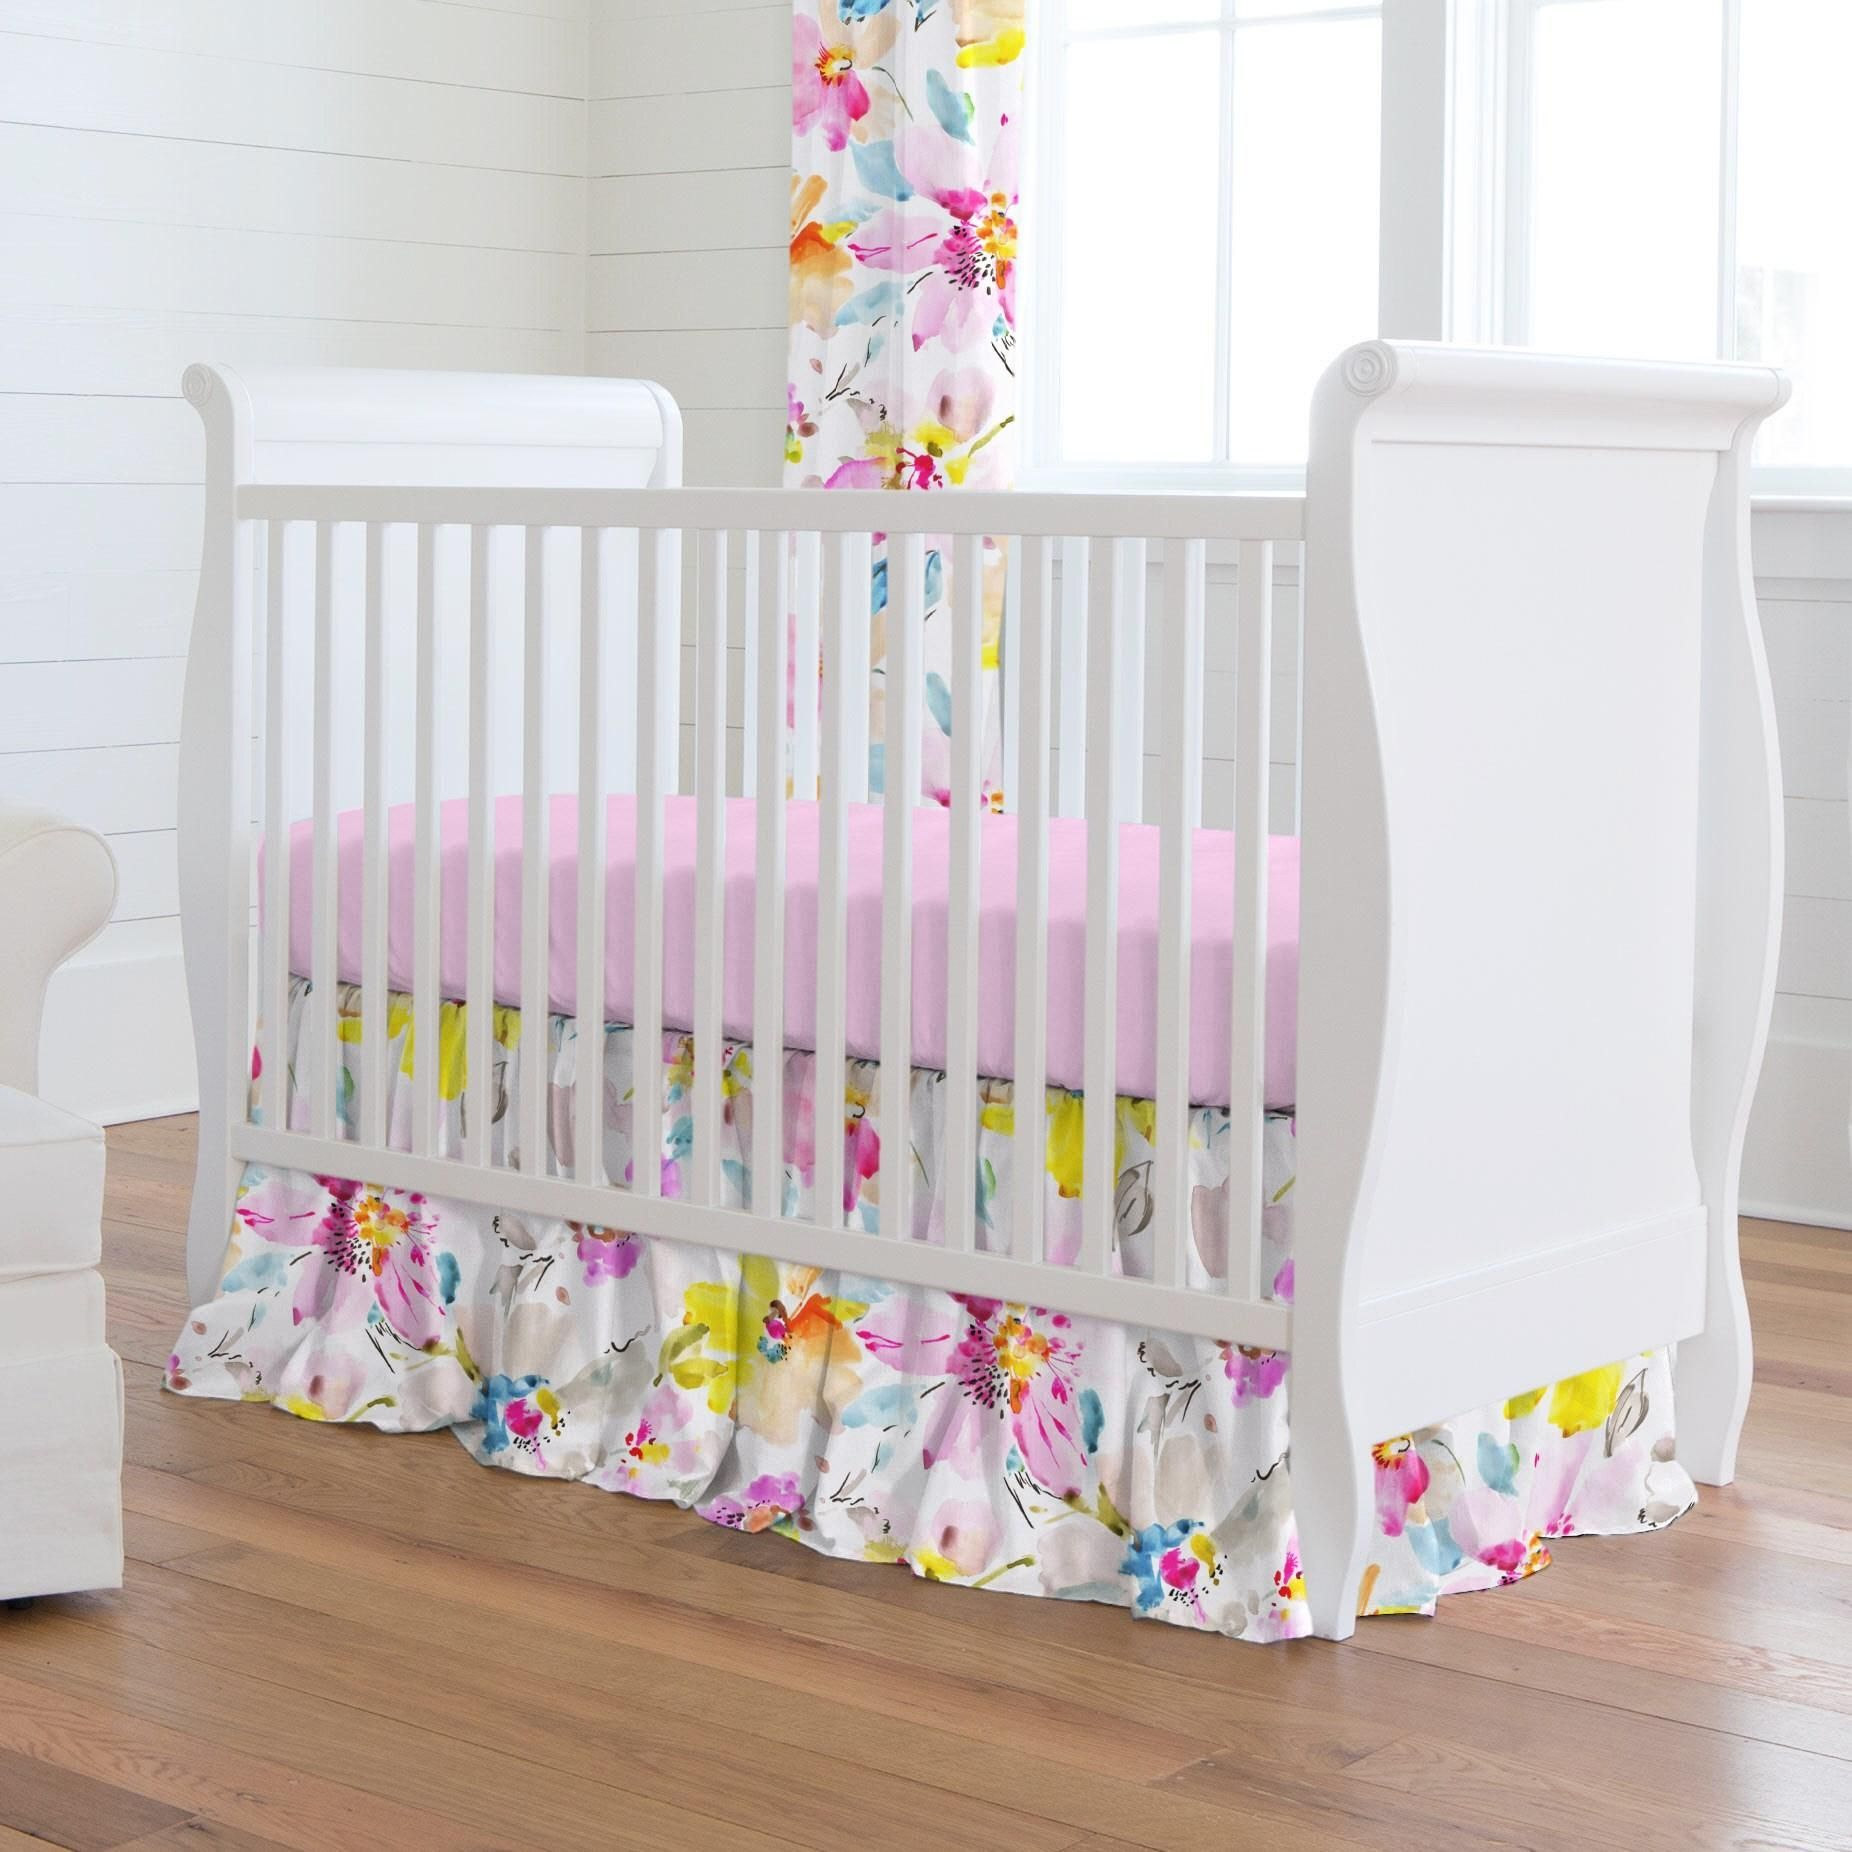 Crib Dust Ruffle in Watercolor Floral by Carousel Designs